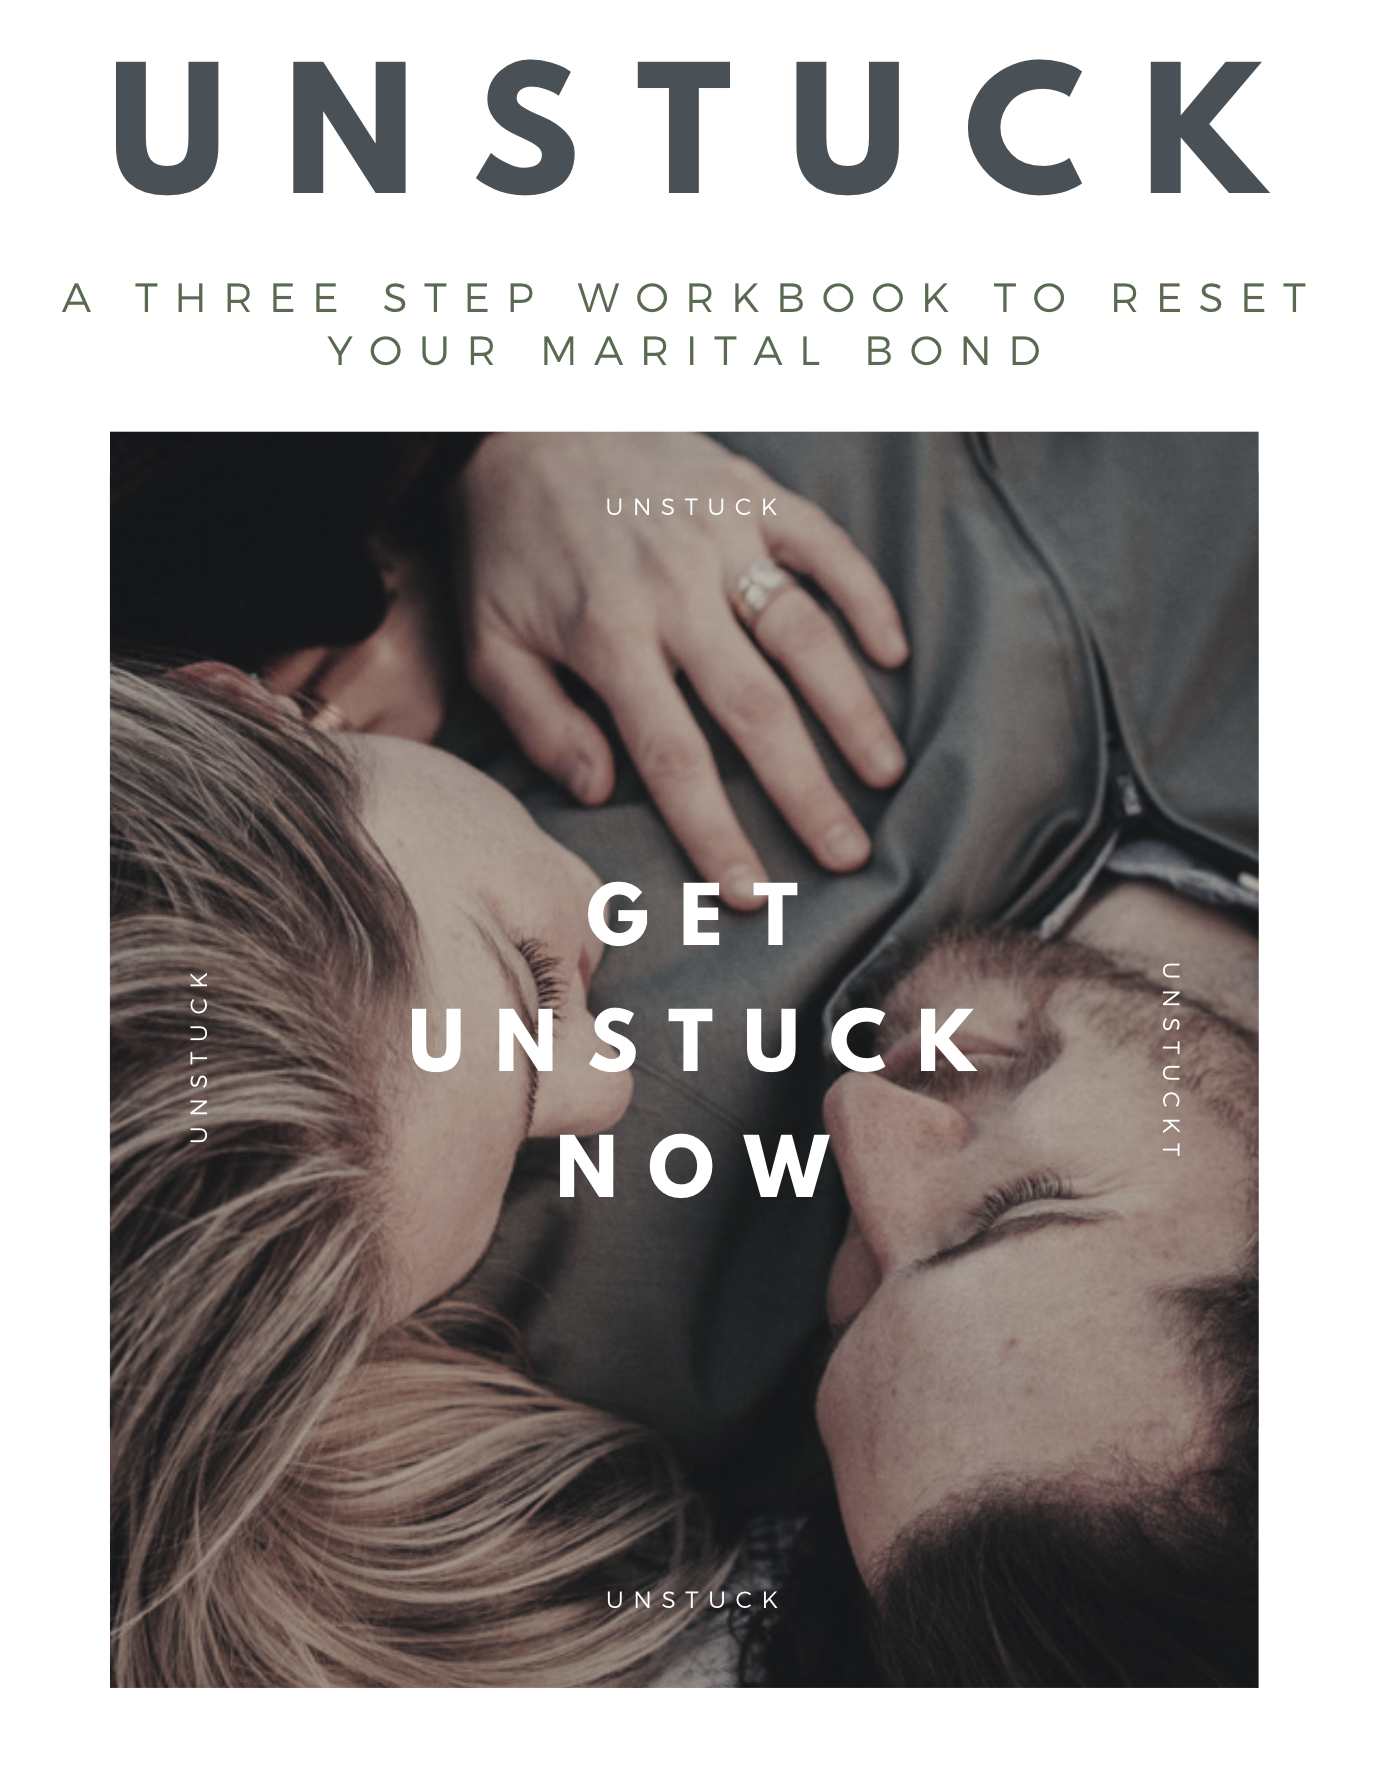 UNSTUCK - Reset your marital bond, today. No more waiting or wondering - you can have a stronger, healthier marriage NOW. Gain skills while learning about the top techniques shared with couples! Is your marriage lackluster, distant, hurting, angry, or stuck? Get UNSTUCK! Coming October 1st, 2019!